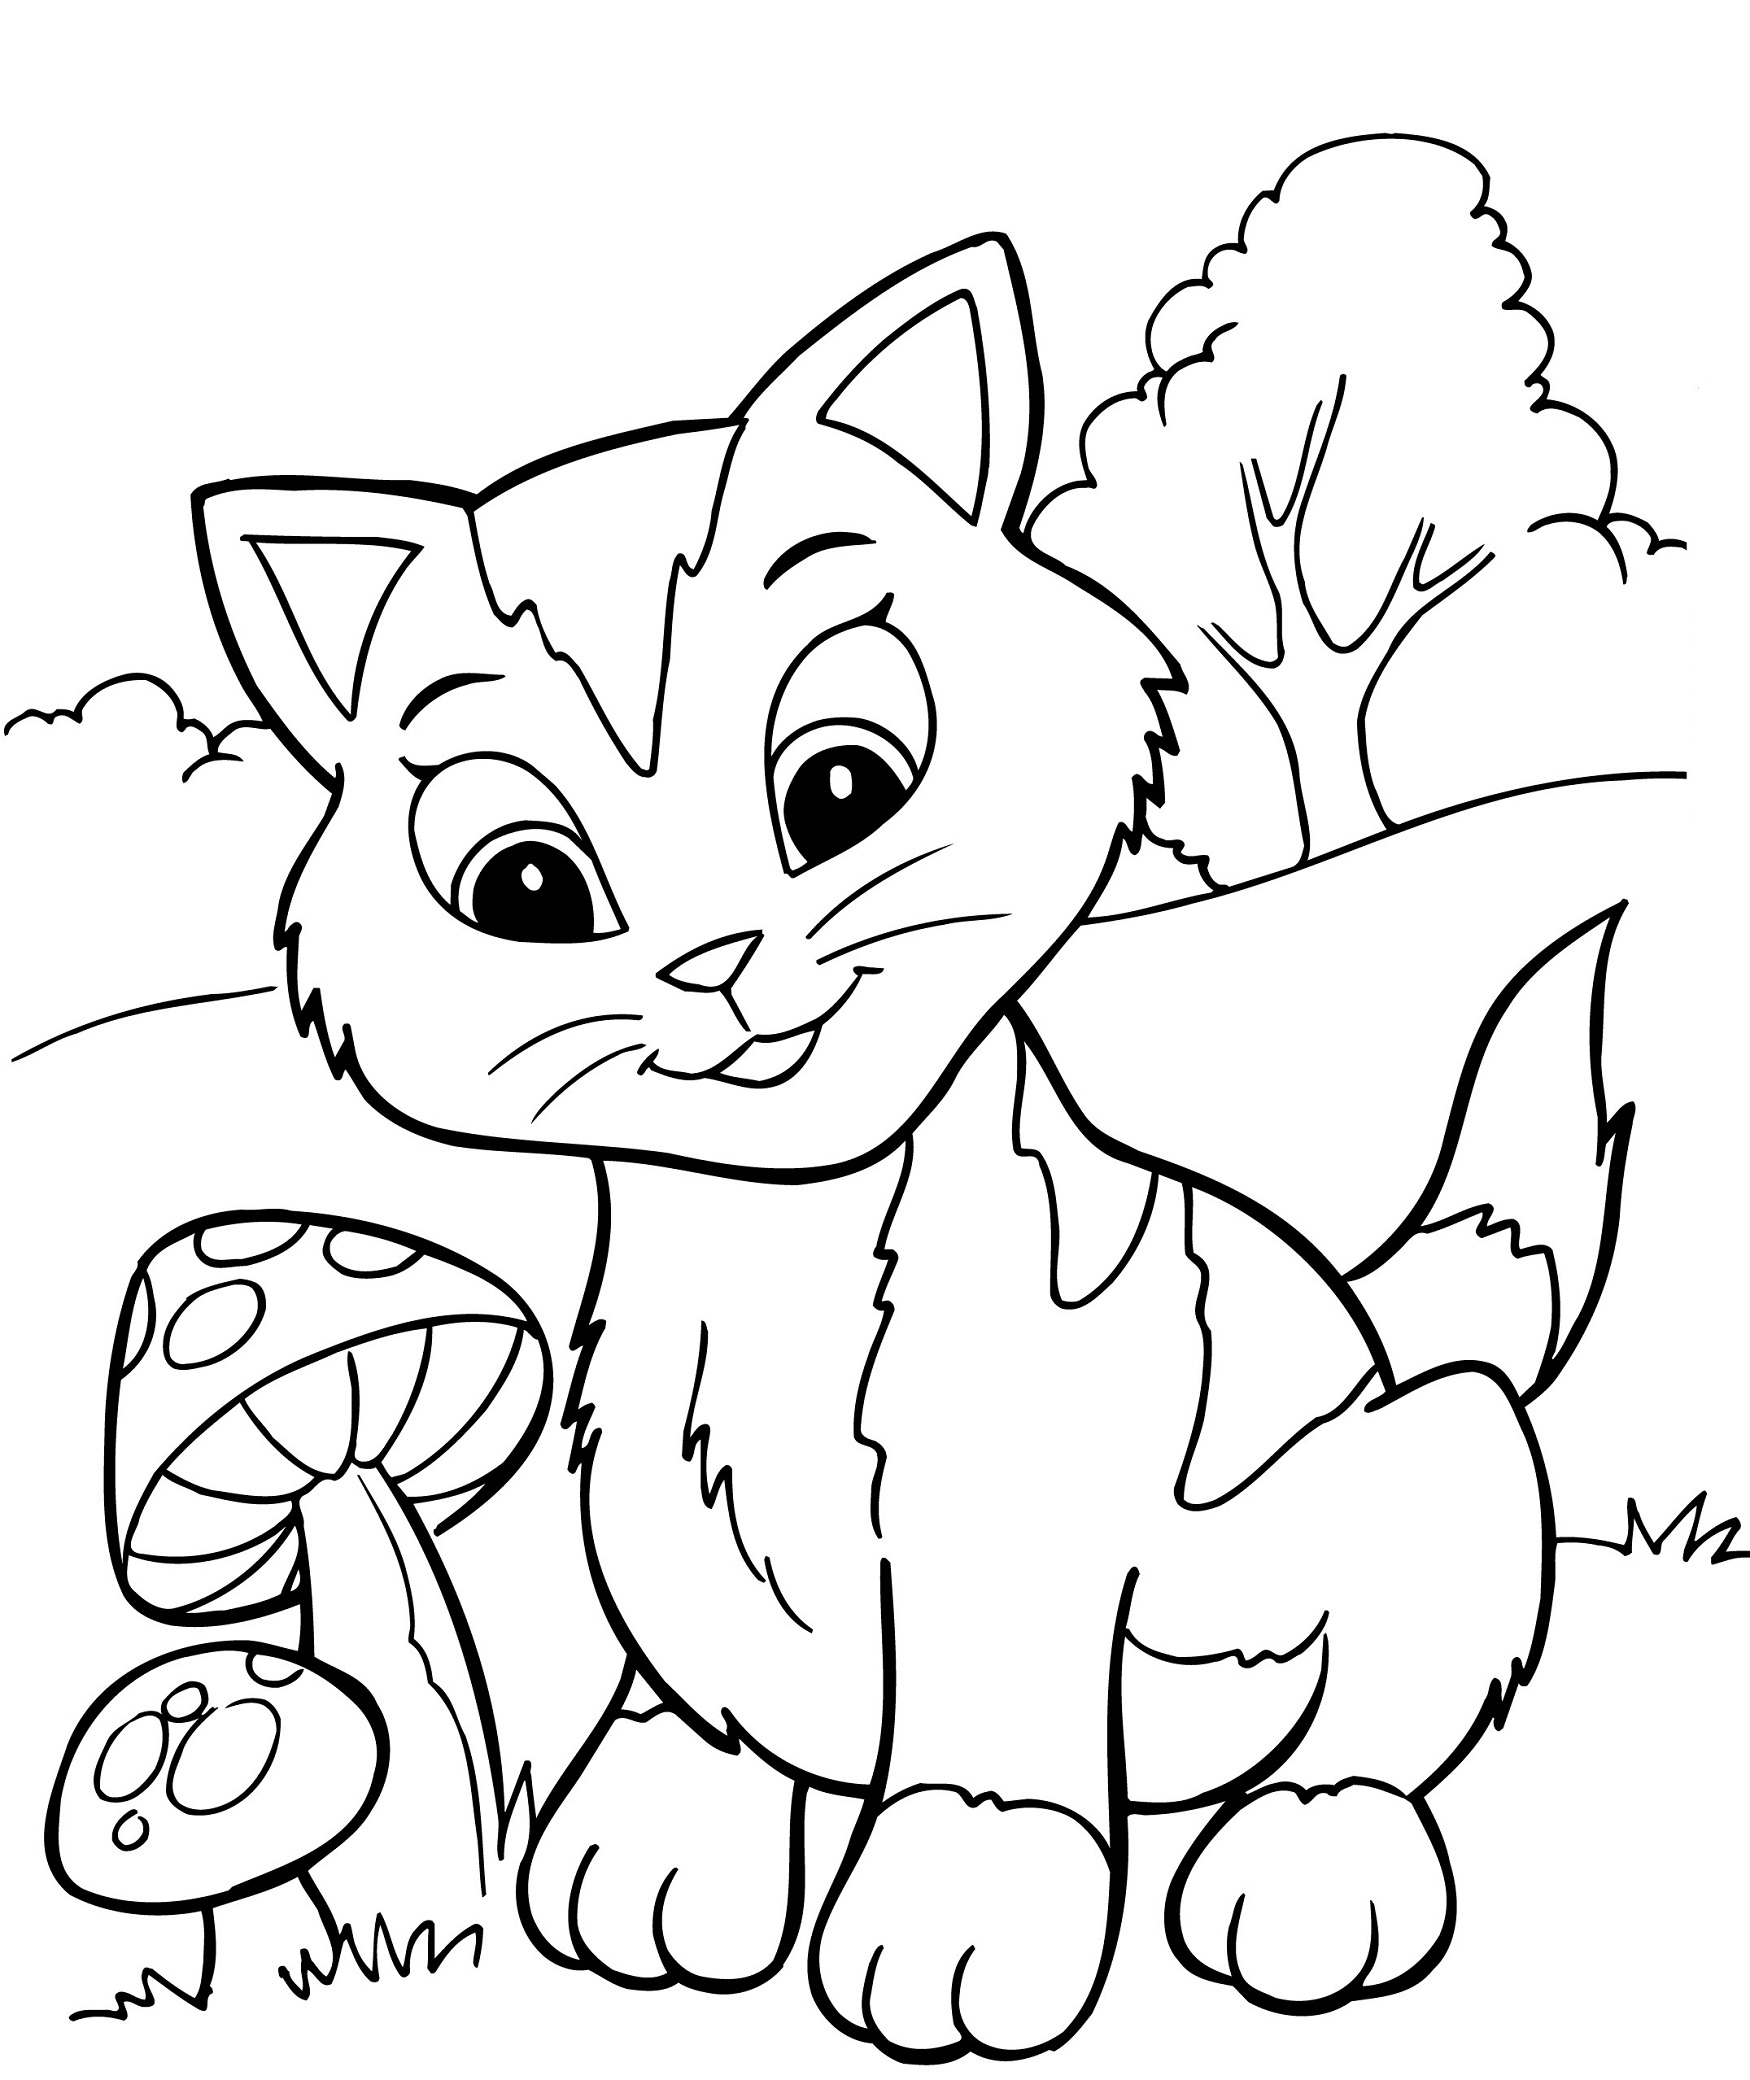 1750x2080 Litten Coloring Pages Free Coloring For Kids